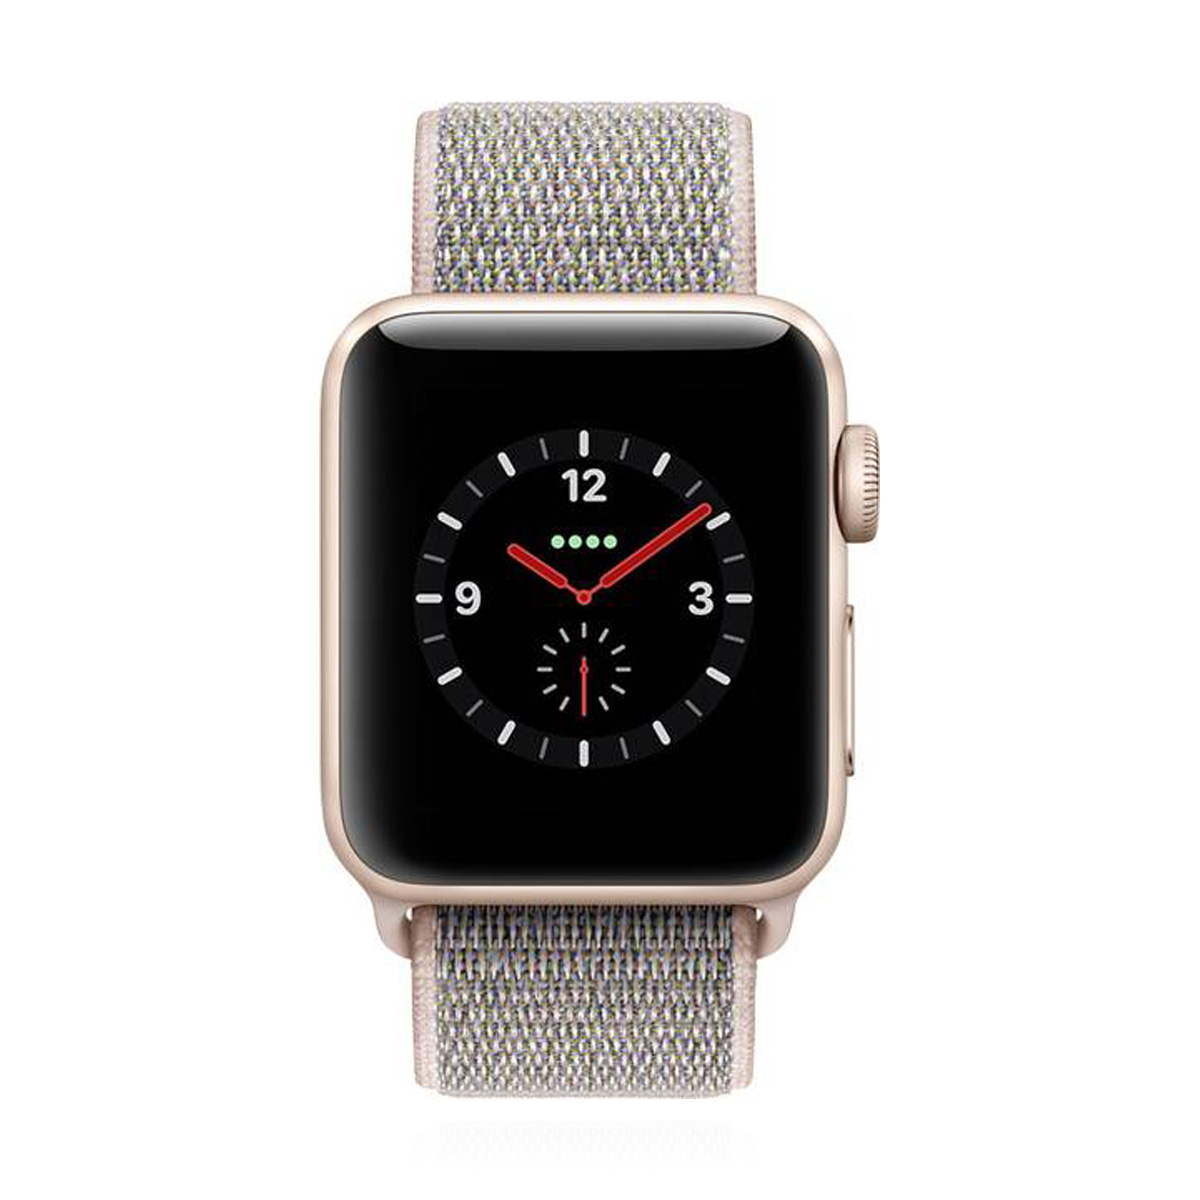 Apple WATCH Series 3 GPS + Cellular 38mm goldenes Aluminiumgehäuse mit Sport Loop pink sand